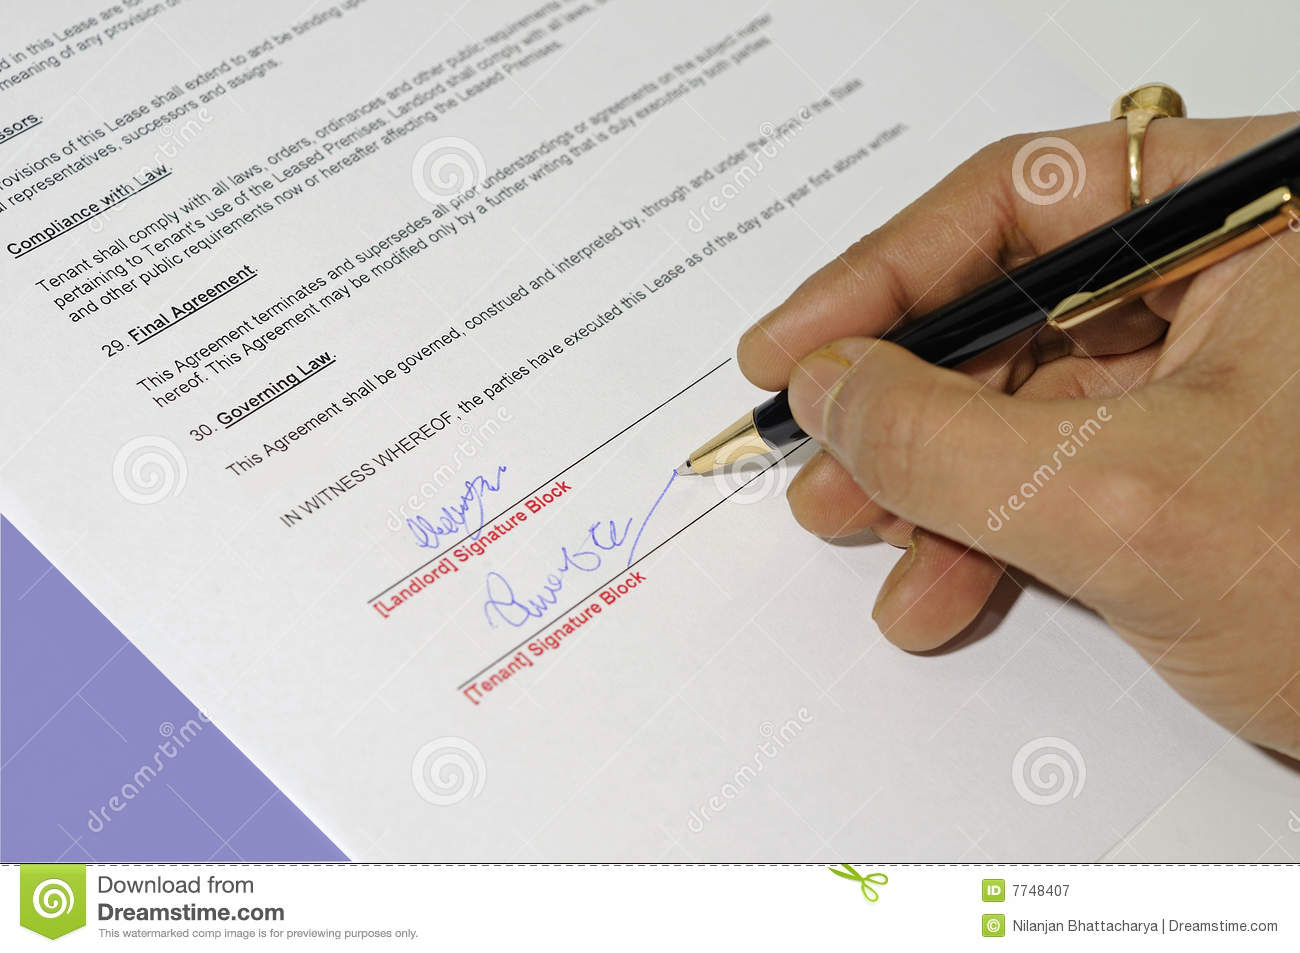 Lease Agreement Being Signed Royalty Free Stock Photography   Image